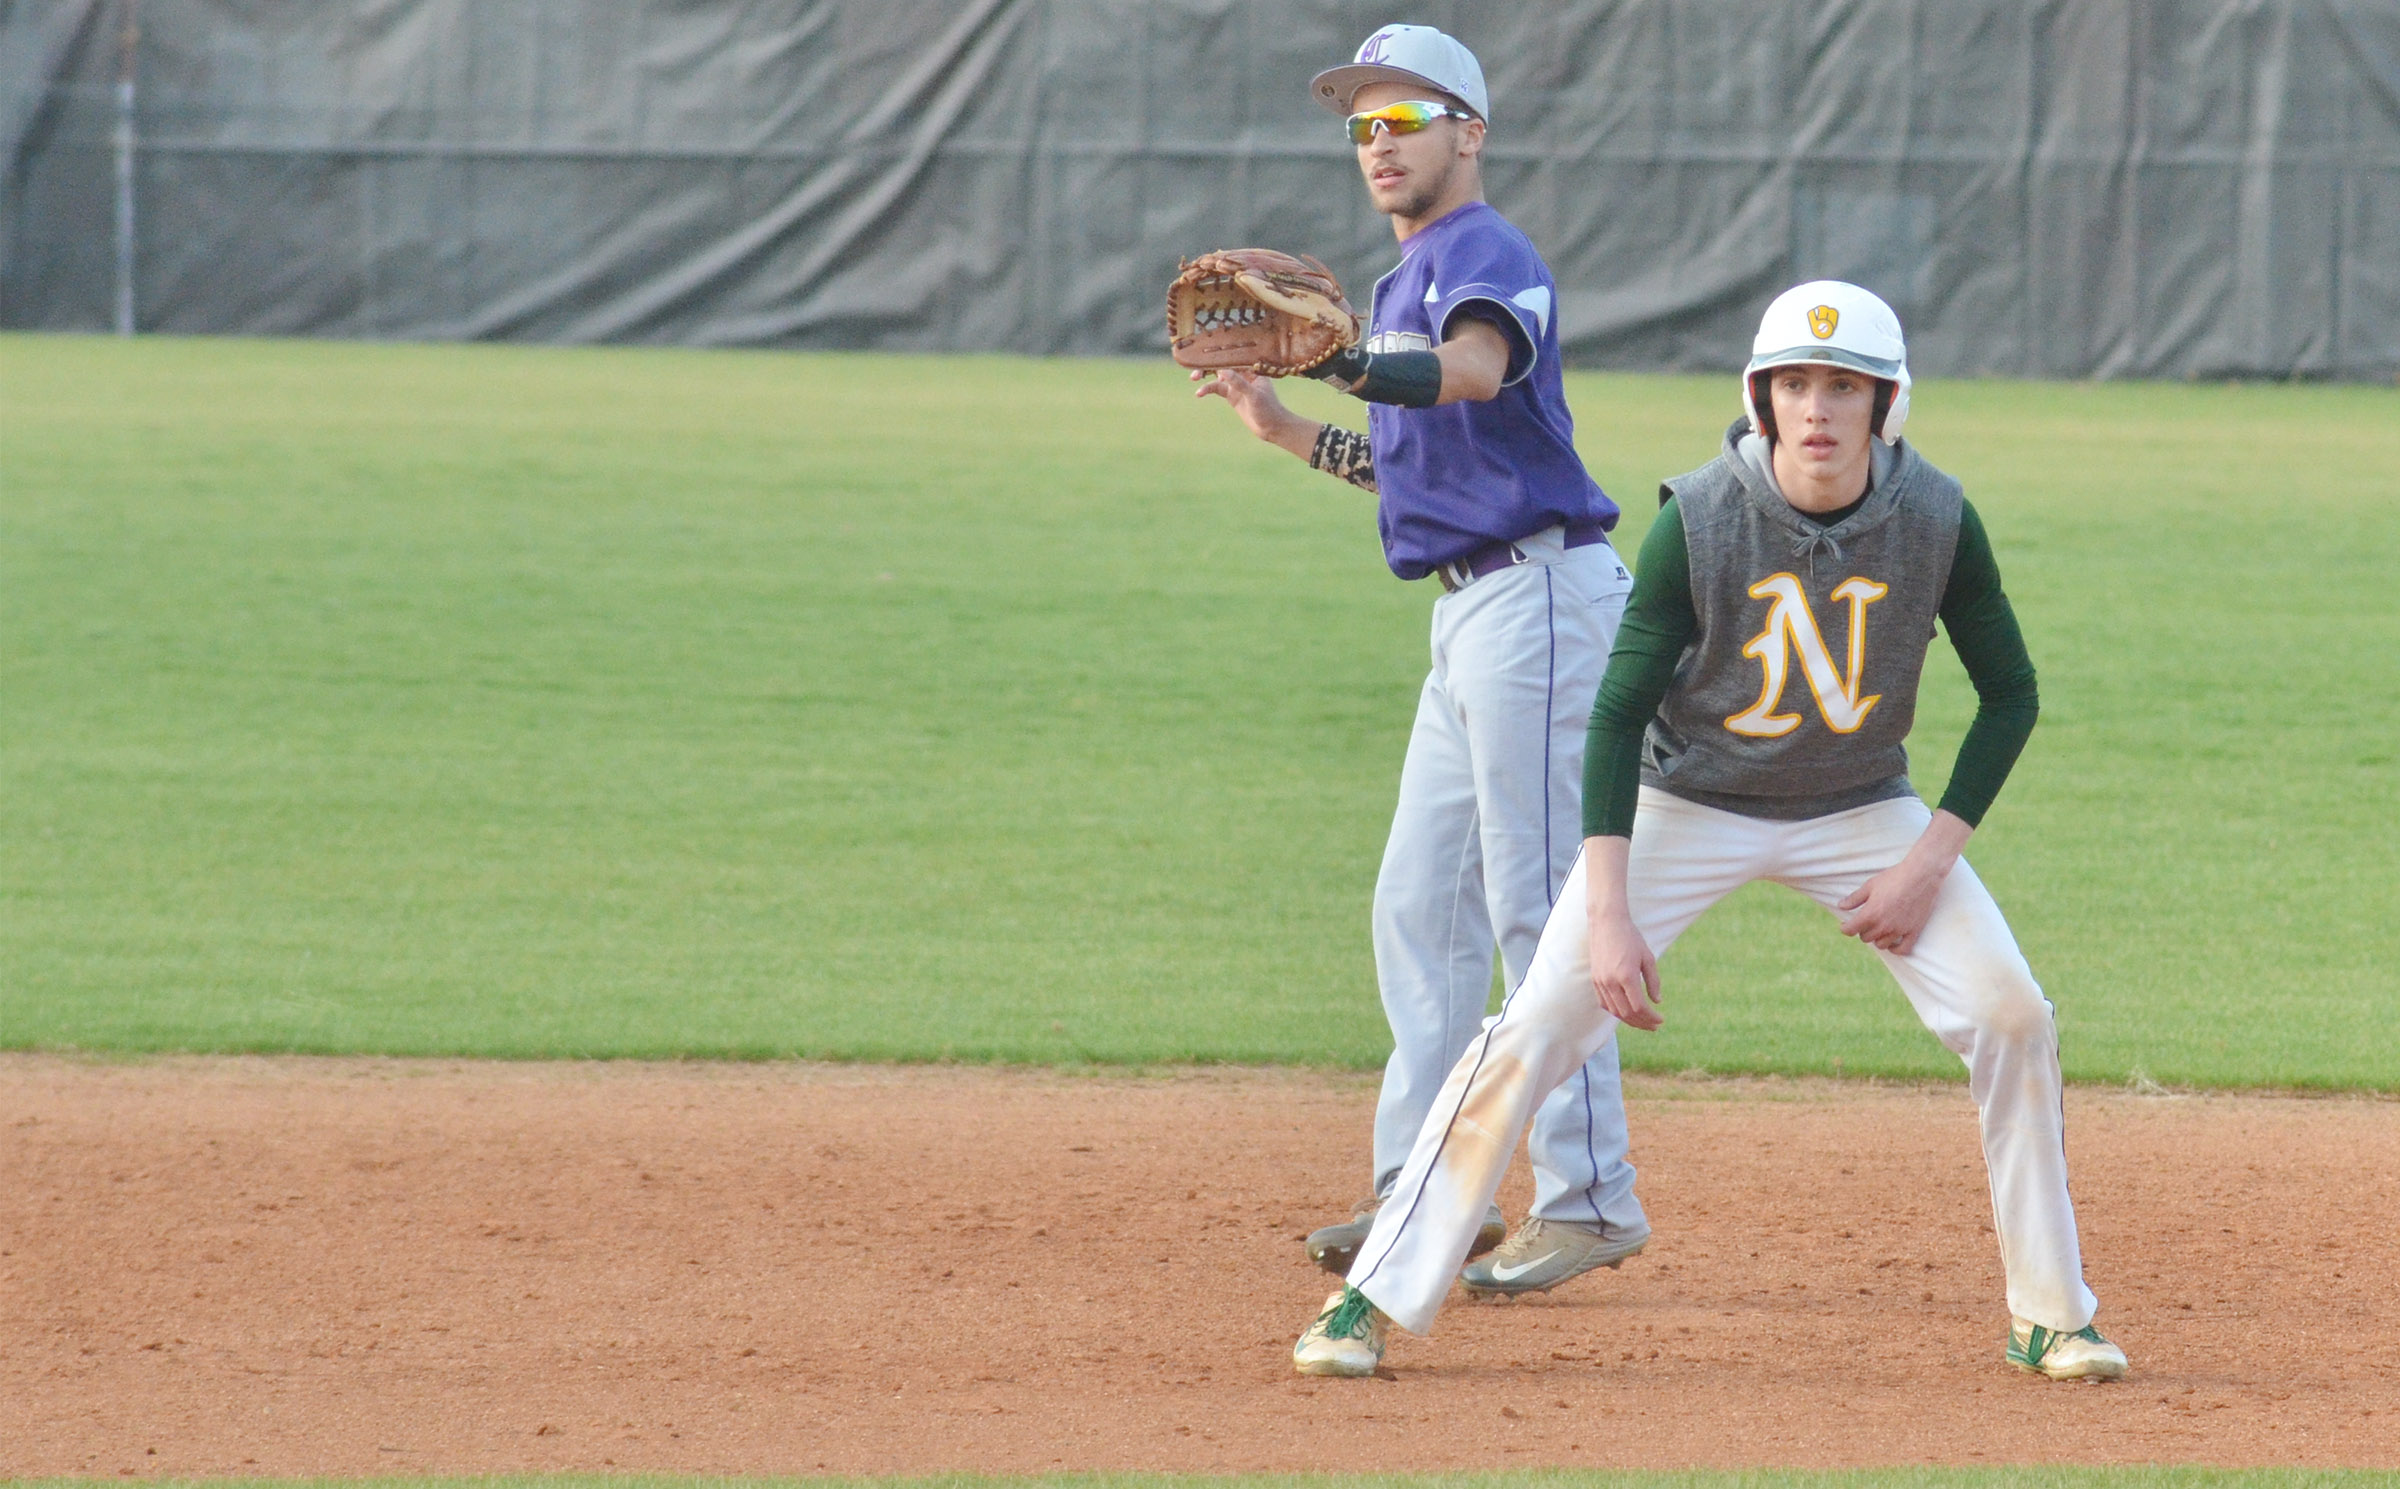 CHS junior Ethan Lay keeps the runner at second.